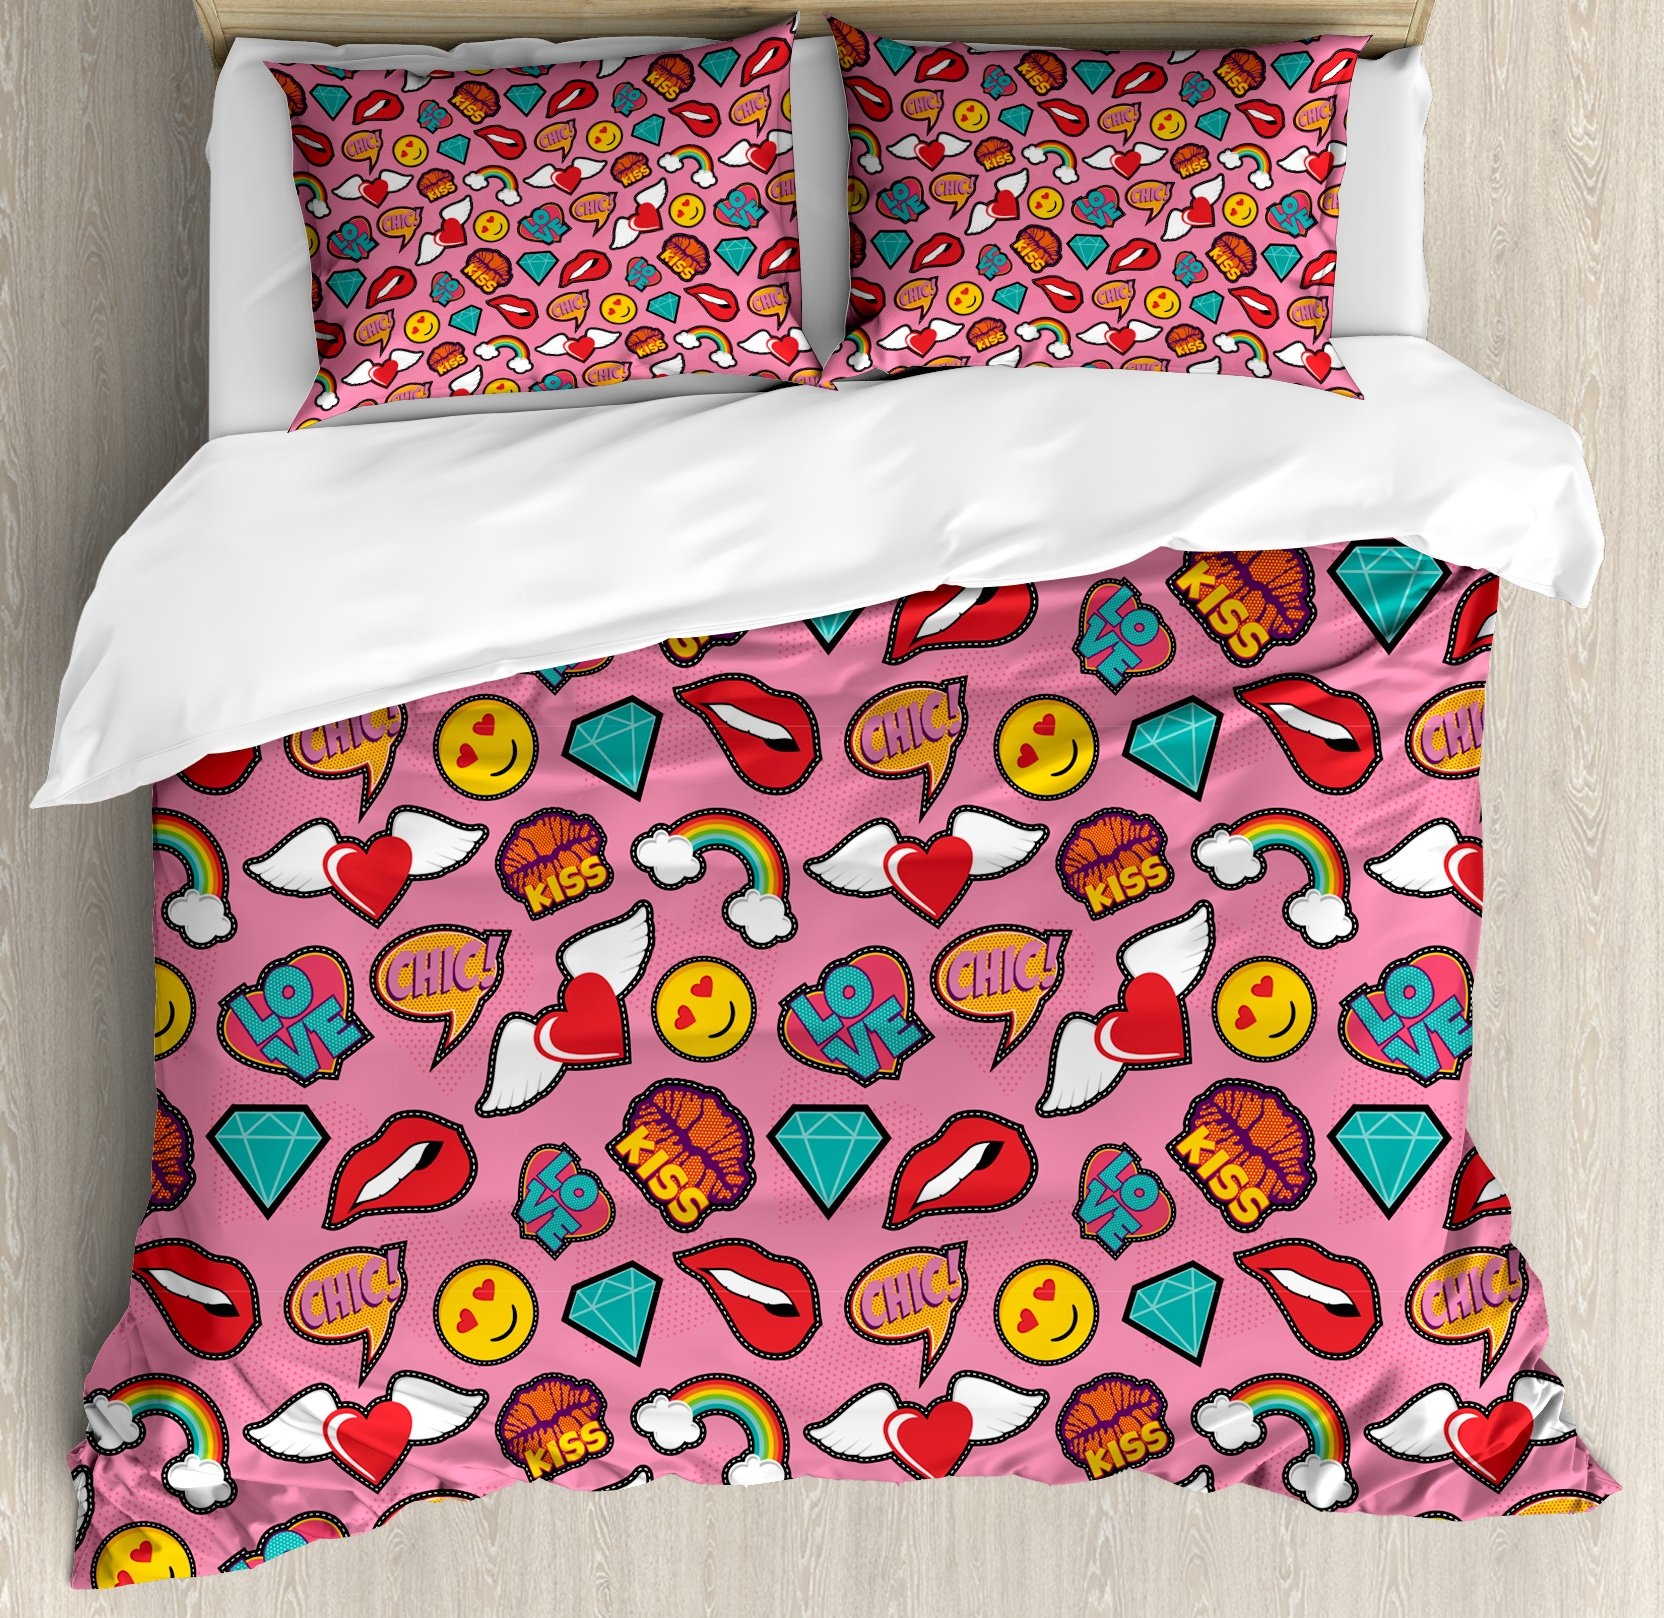 Ambesonne Emoji Duvet Cover Set Queen Size, Dotted Hearts Background with Rainbow Love Woman Lips Pop Art Style Stitch Pattern, Decorative 3 Piece Bedding Set with 2 Pillow Shams, Multicolor